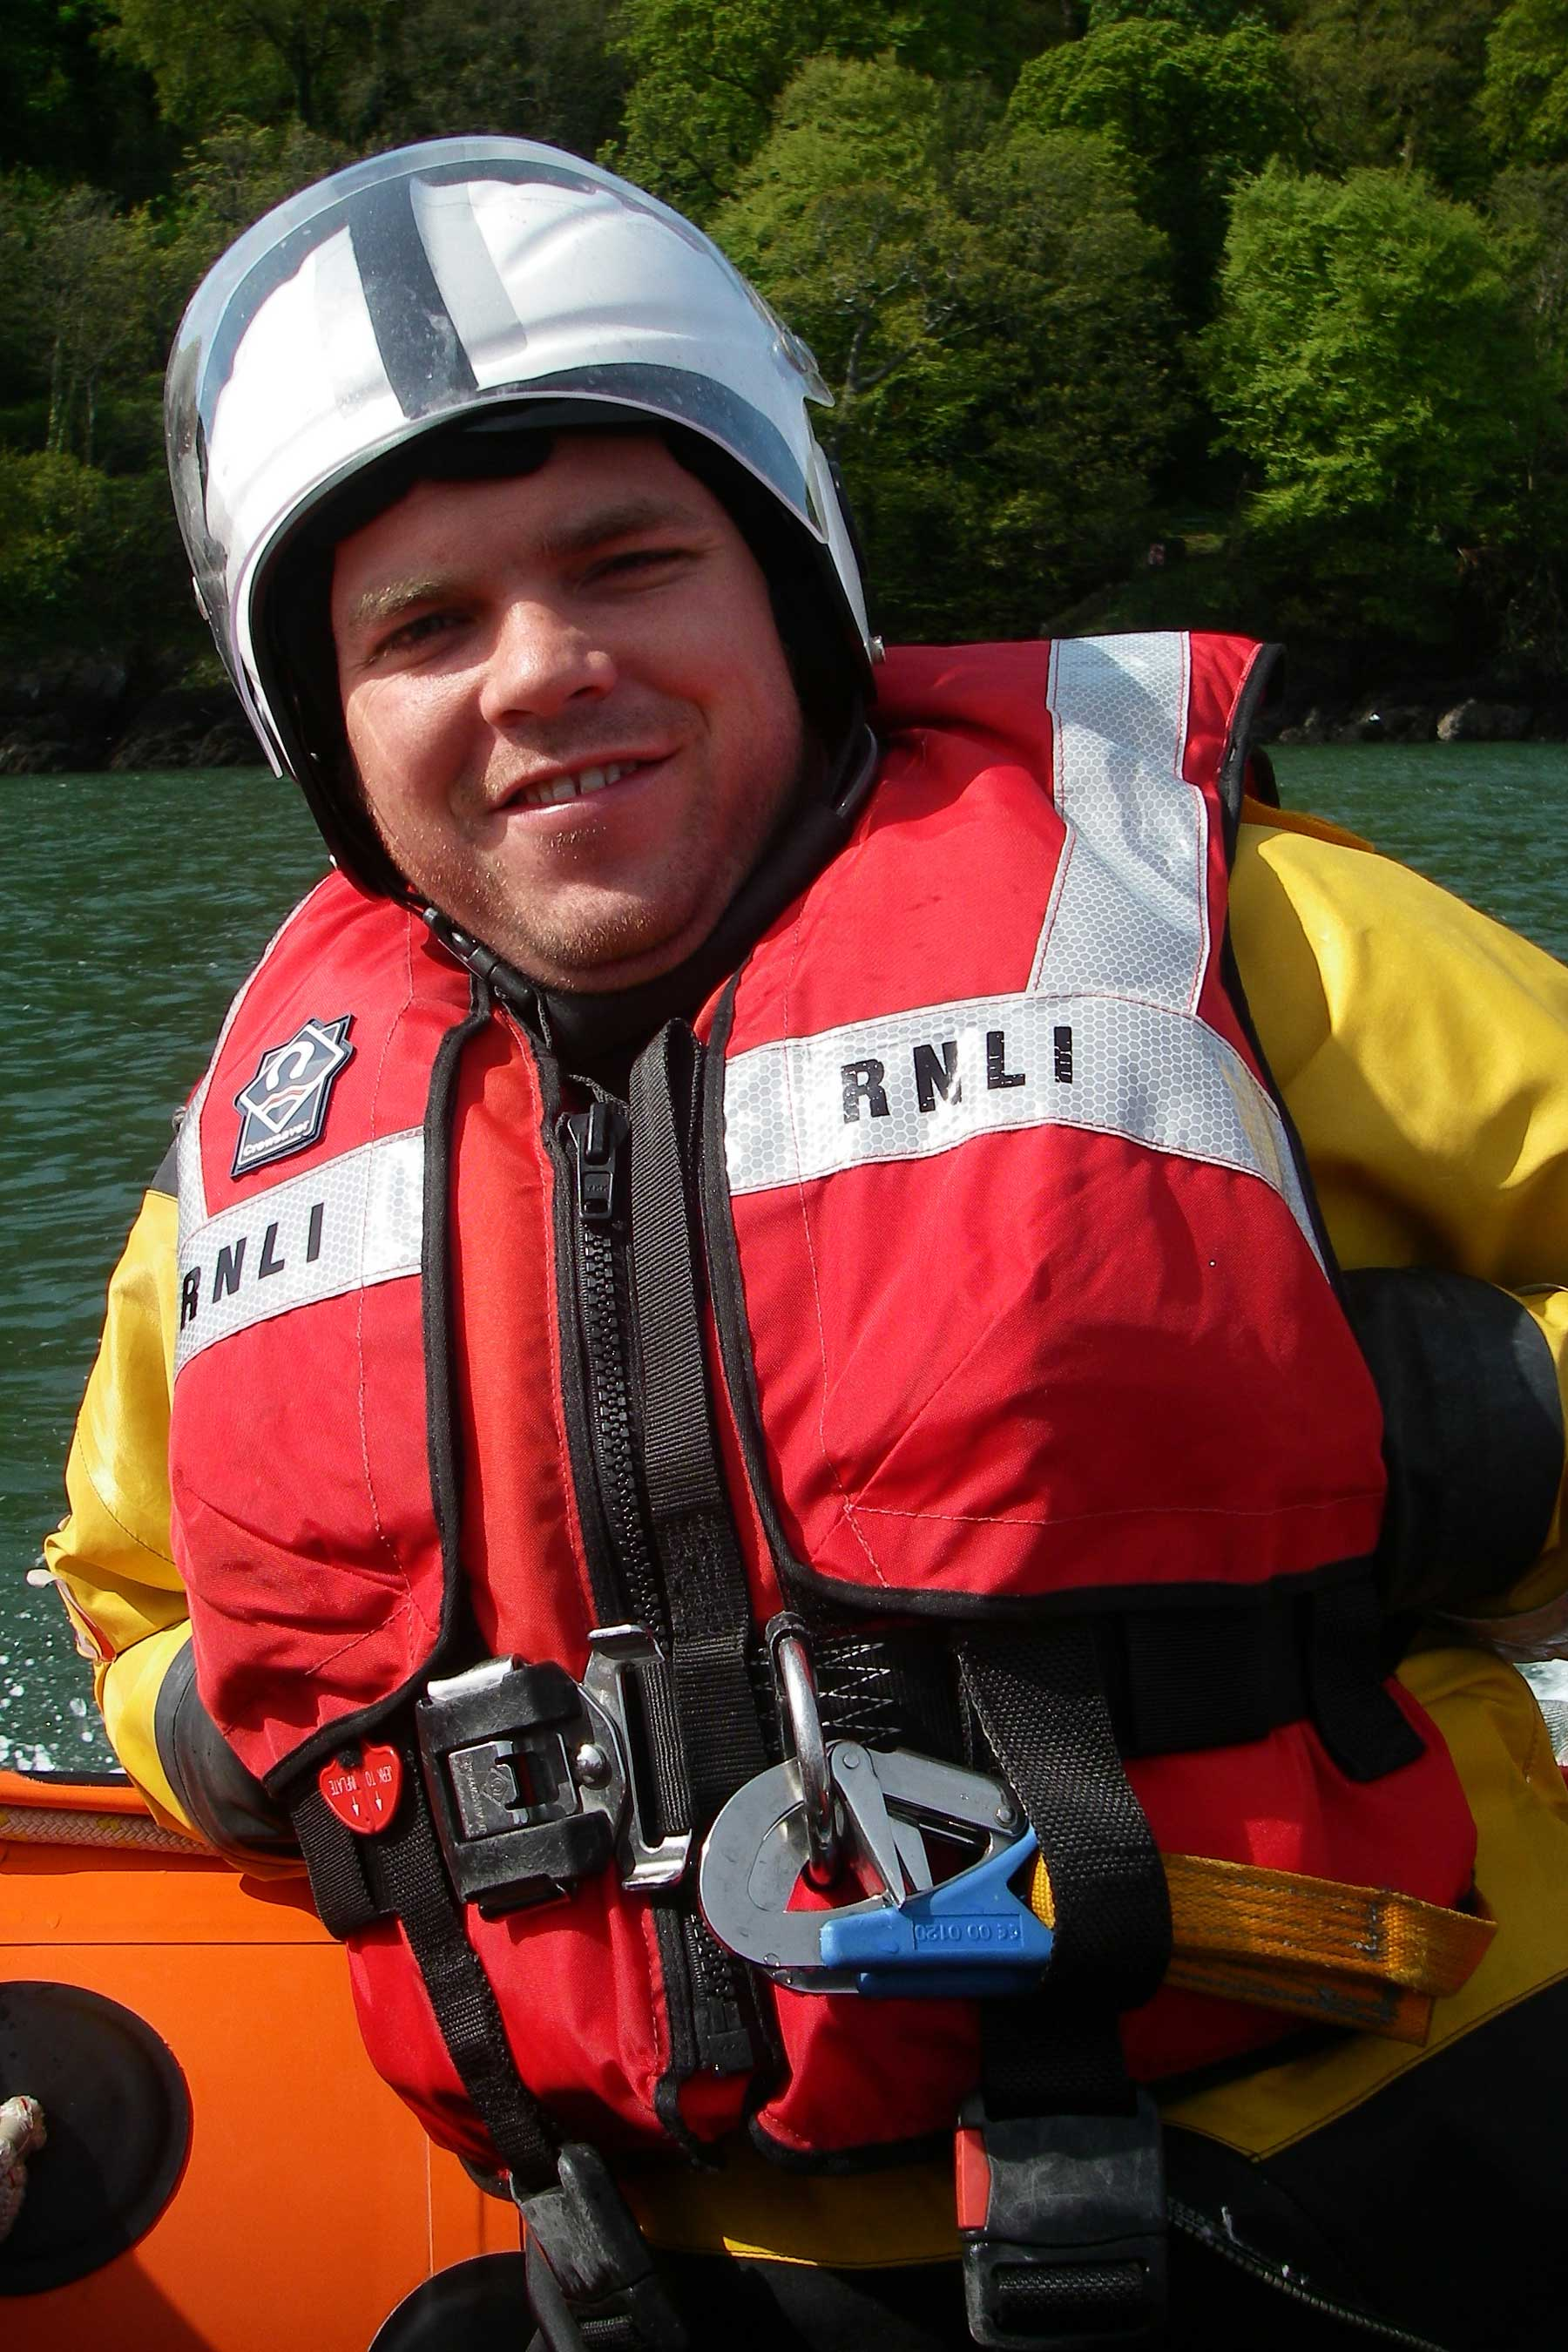 Chris Tracey, Operations Team, RNLI Dart